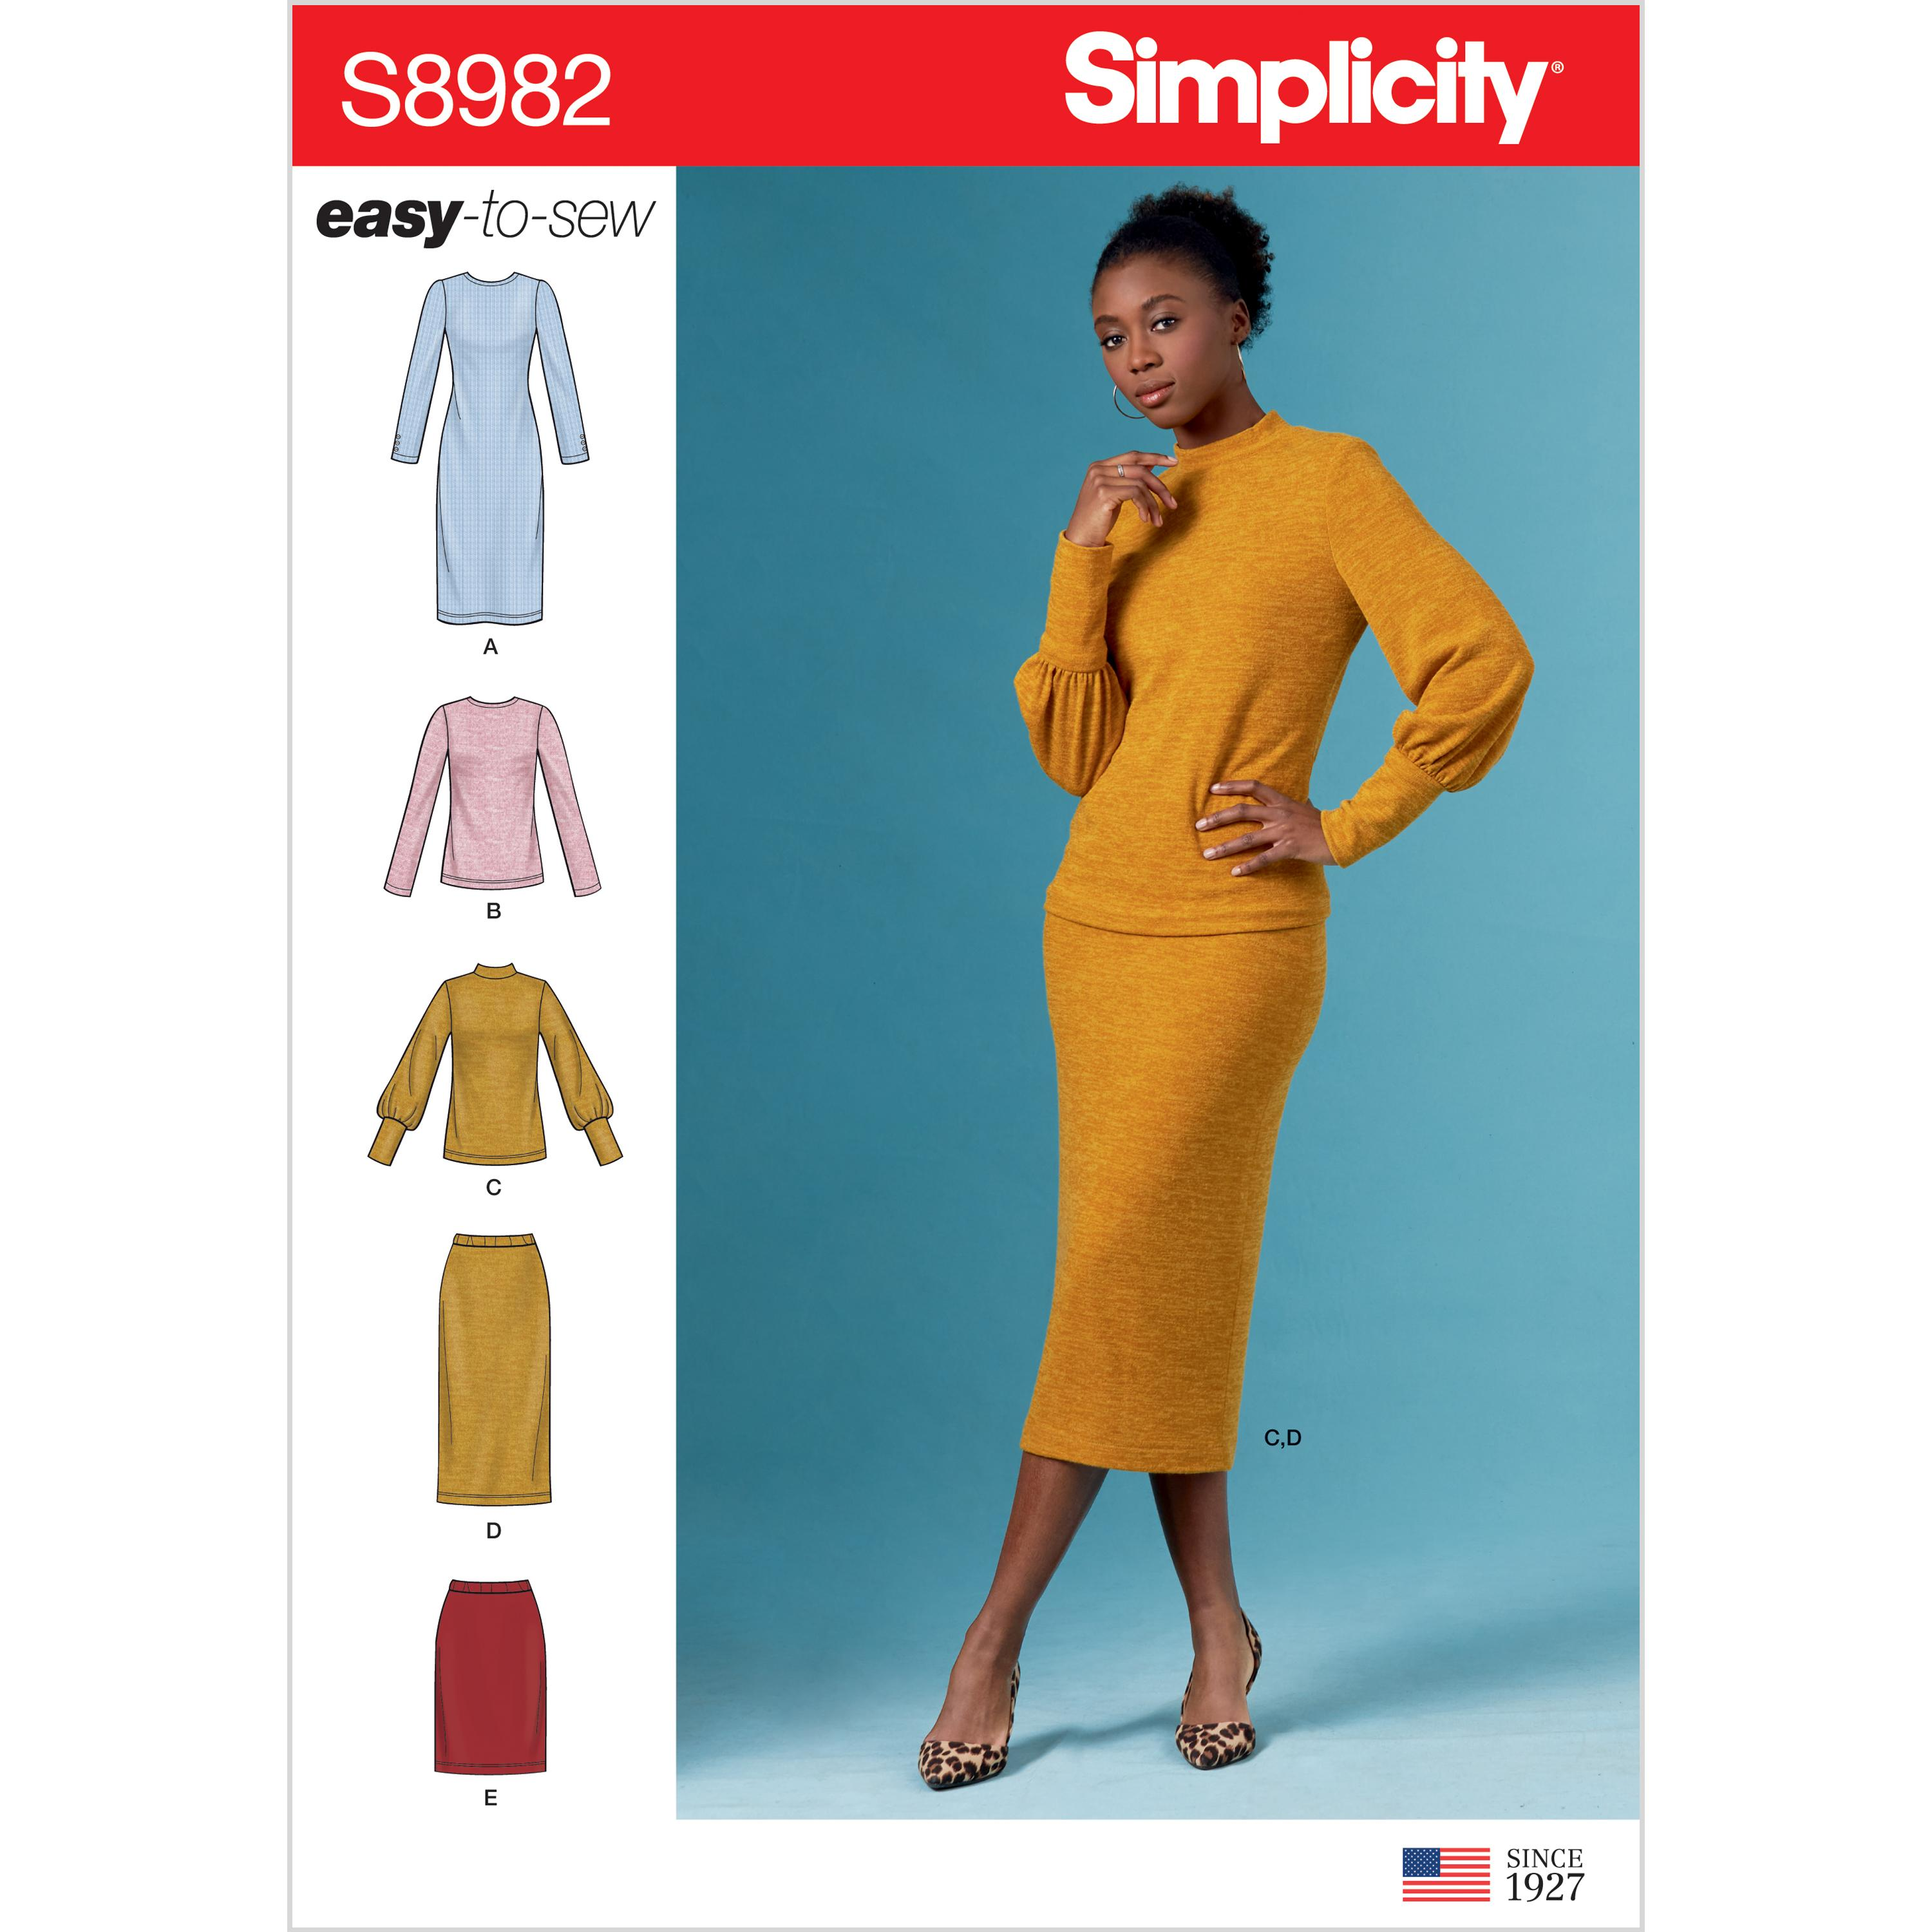 Simplicity S8982 Misses' Knit Two Piece Sweater Dress, Tops, Skirts